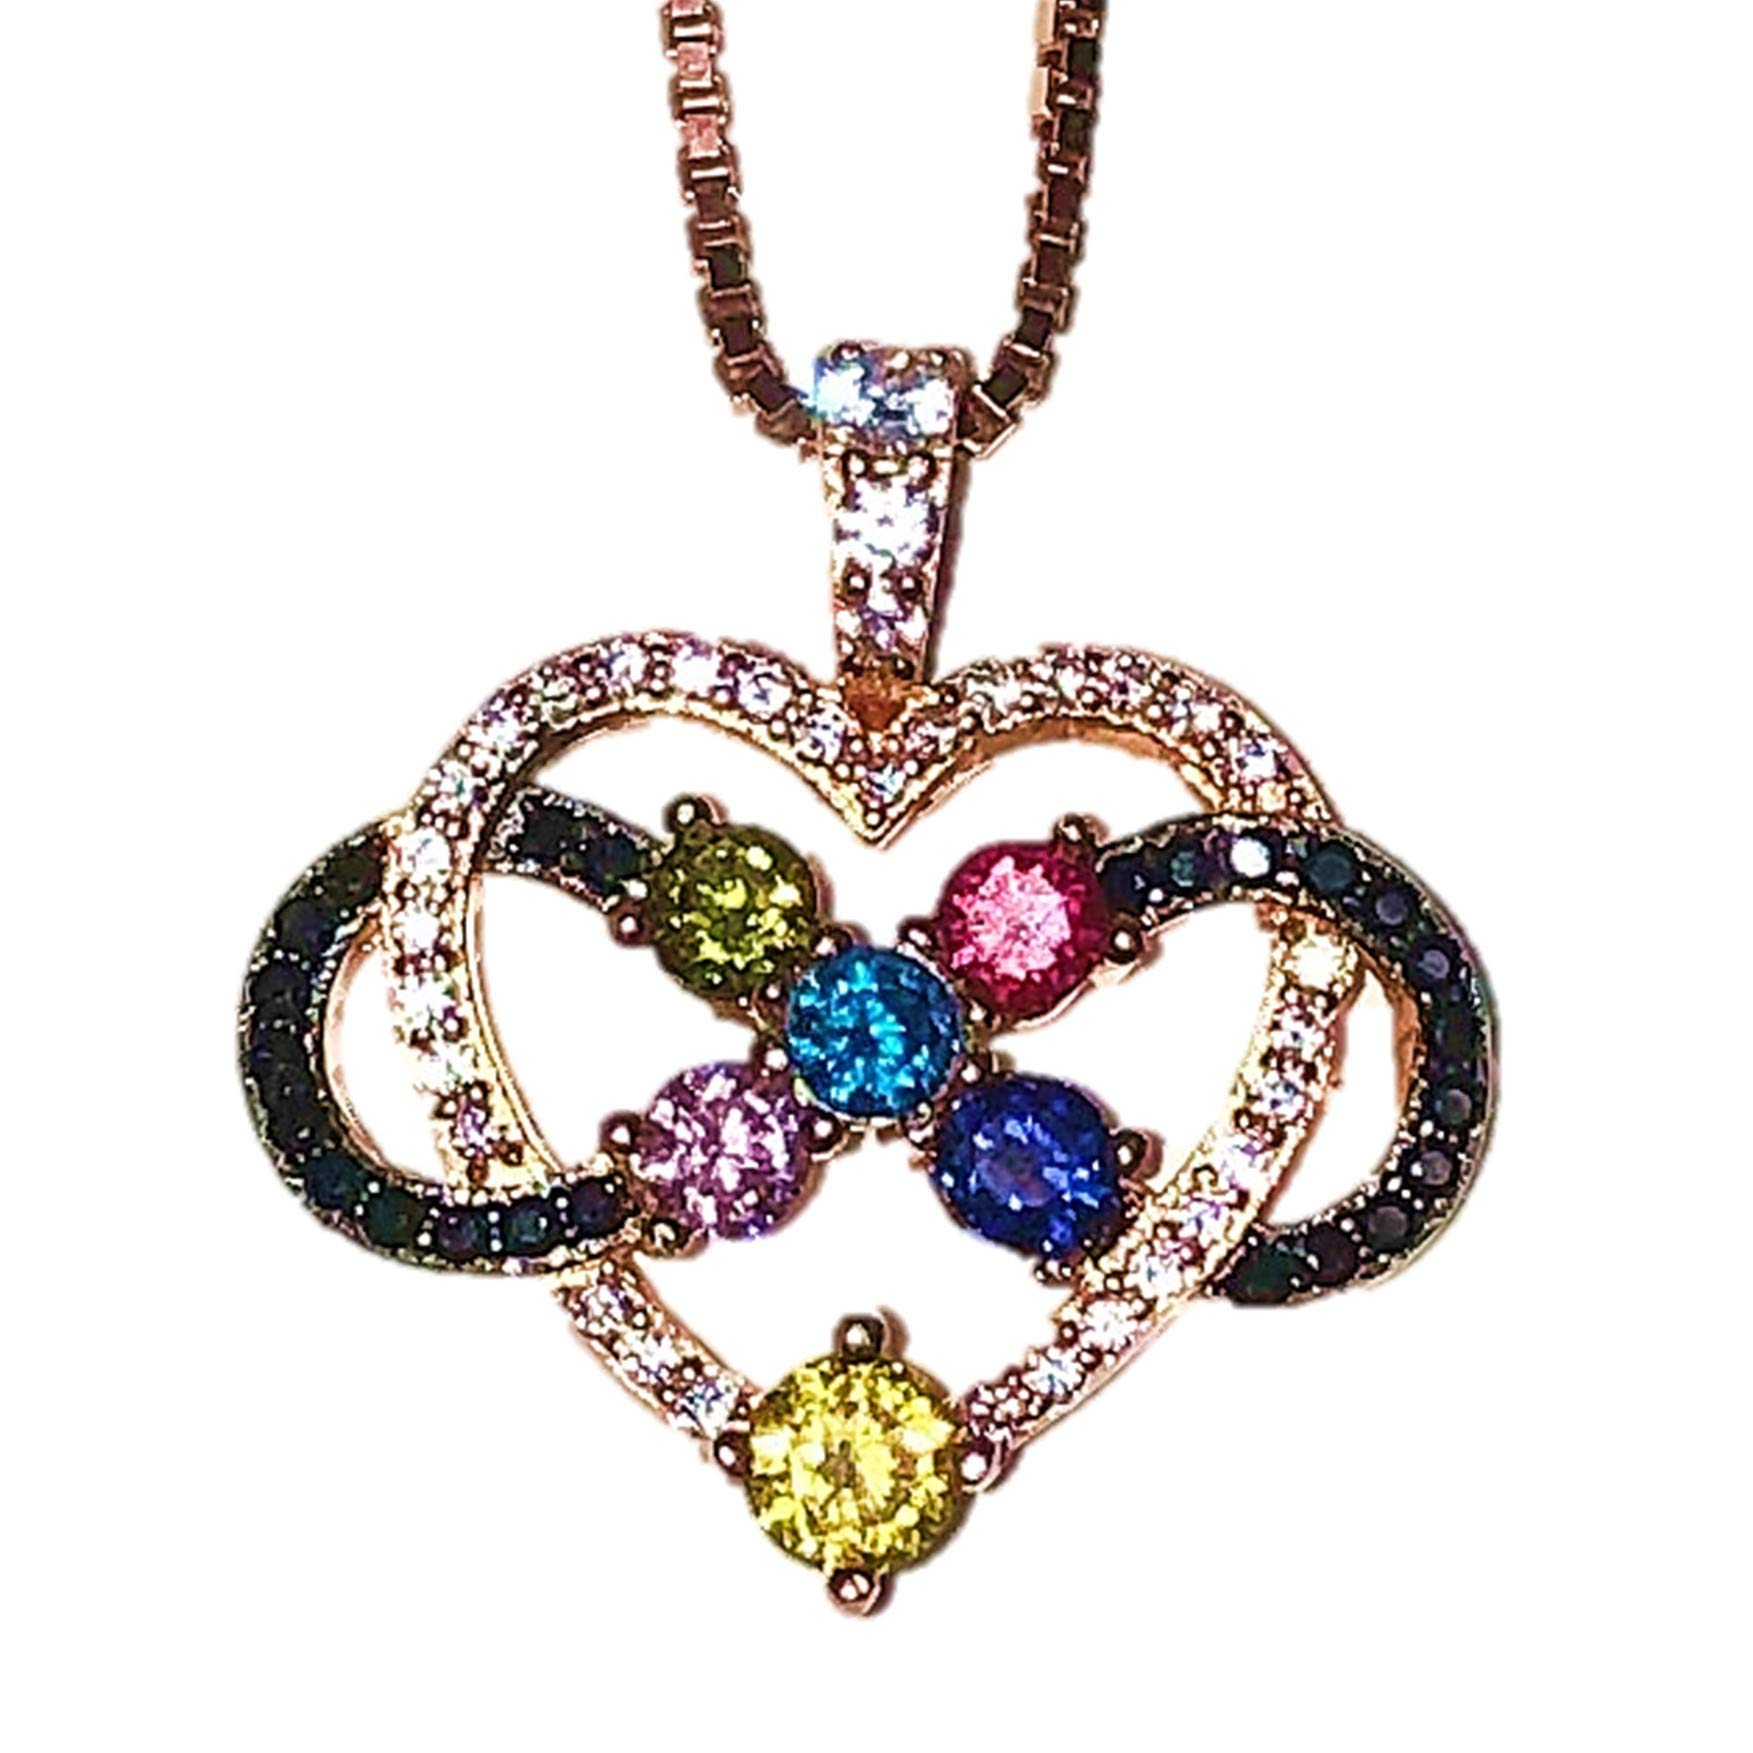 """Central Diamond Center Nana Infinity Love Pendant Mother & Child 1-5 Stones with a .80mm 22"""" Adj. Box Chain, Silver,10K or 14K Gold"""